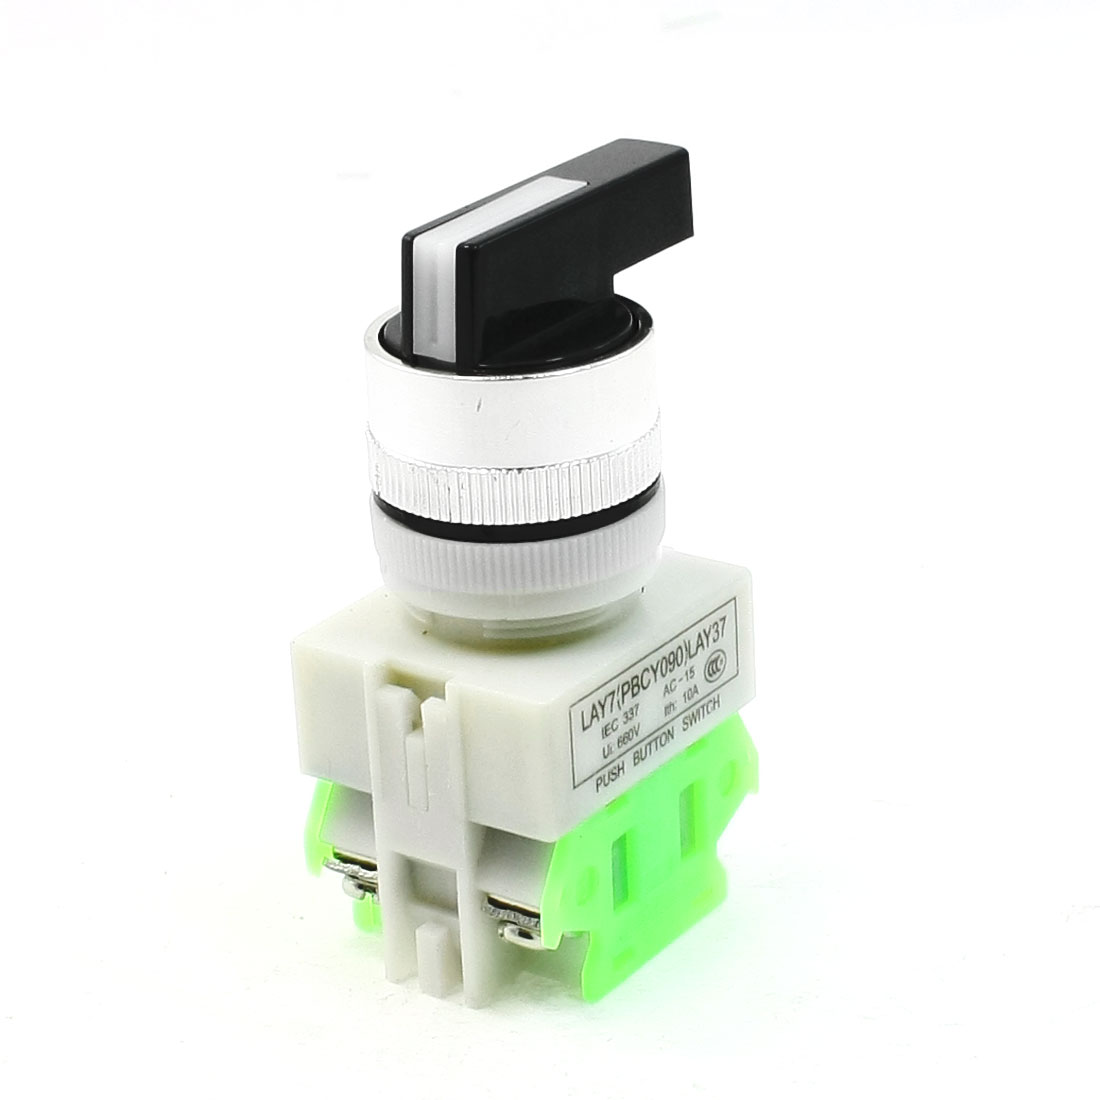 AC 660V 10A DPST 3 Position Rotary Selector Self-Locking Button Switch